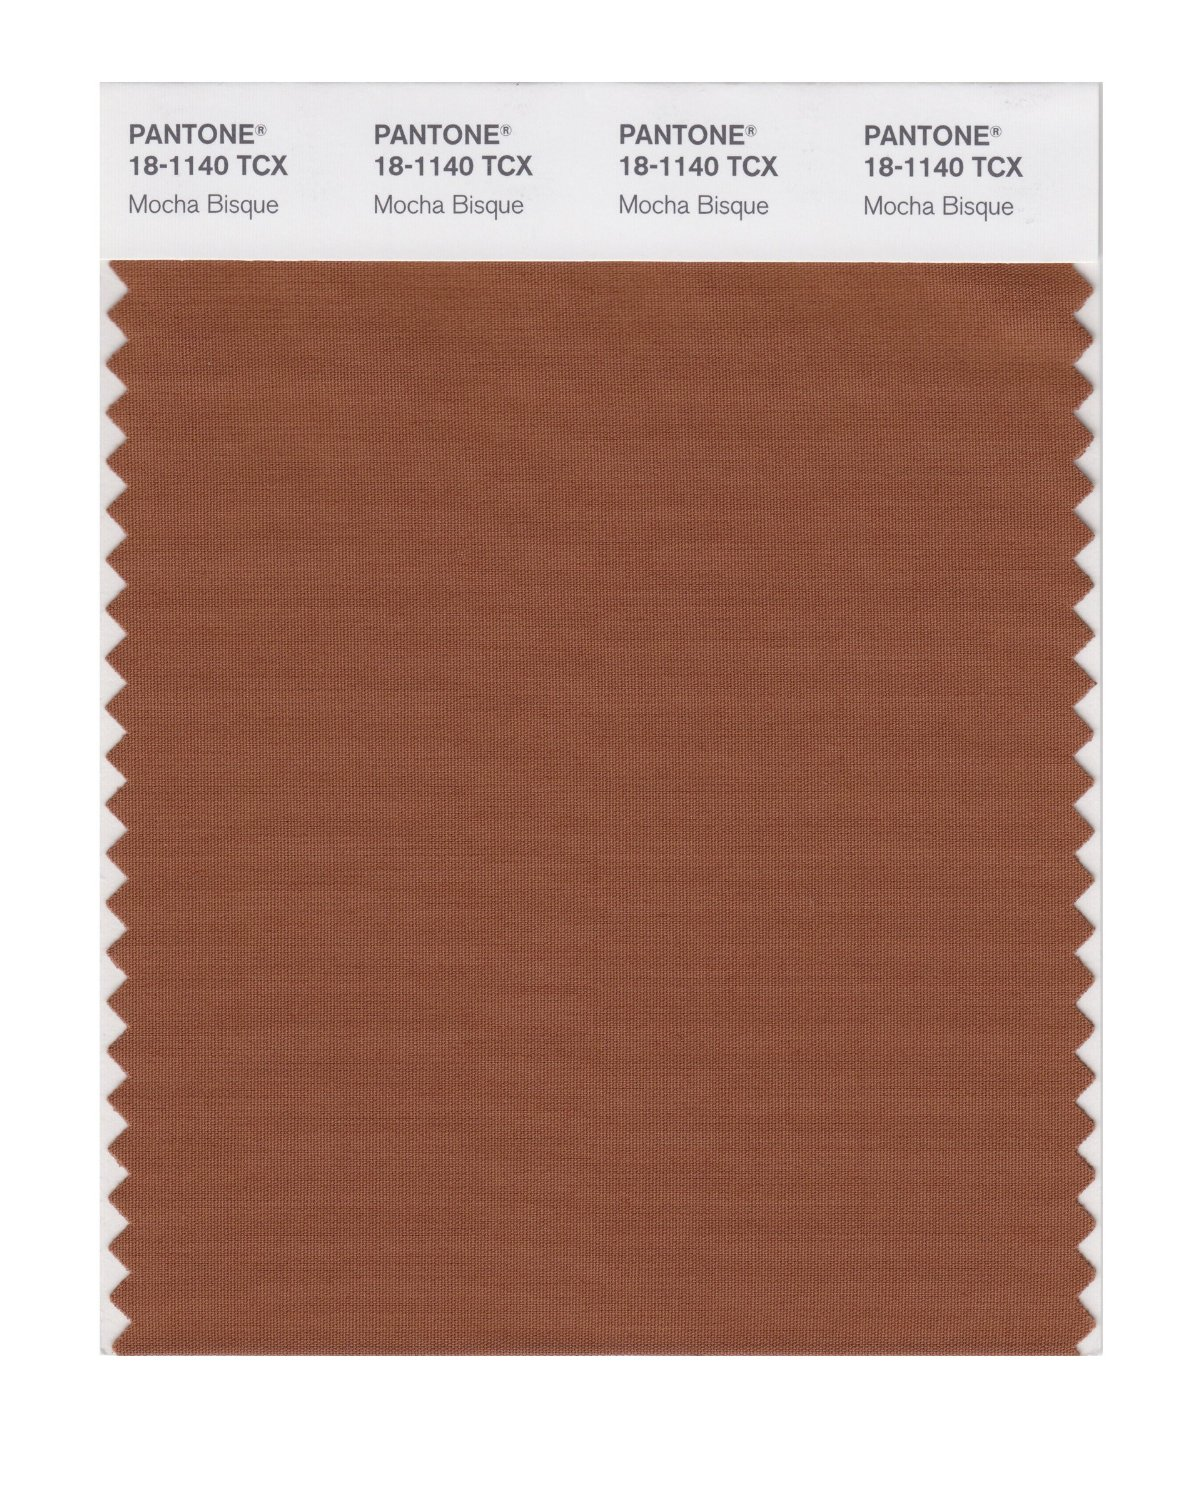 Pantone Smart Swatch 18-1140 Mocha Bisque